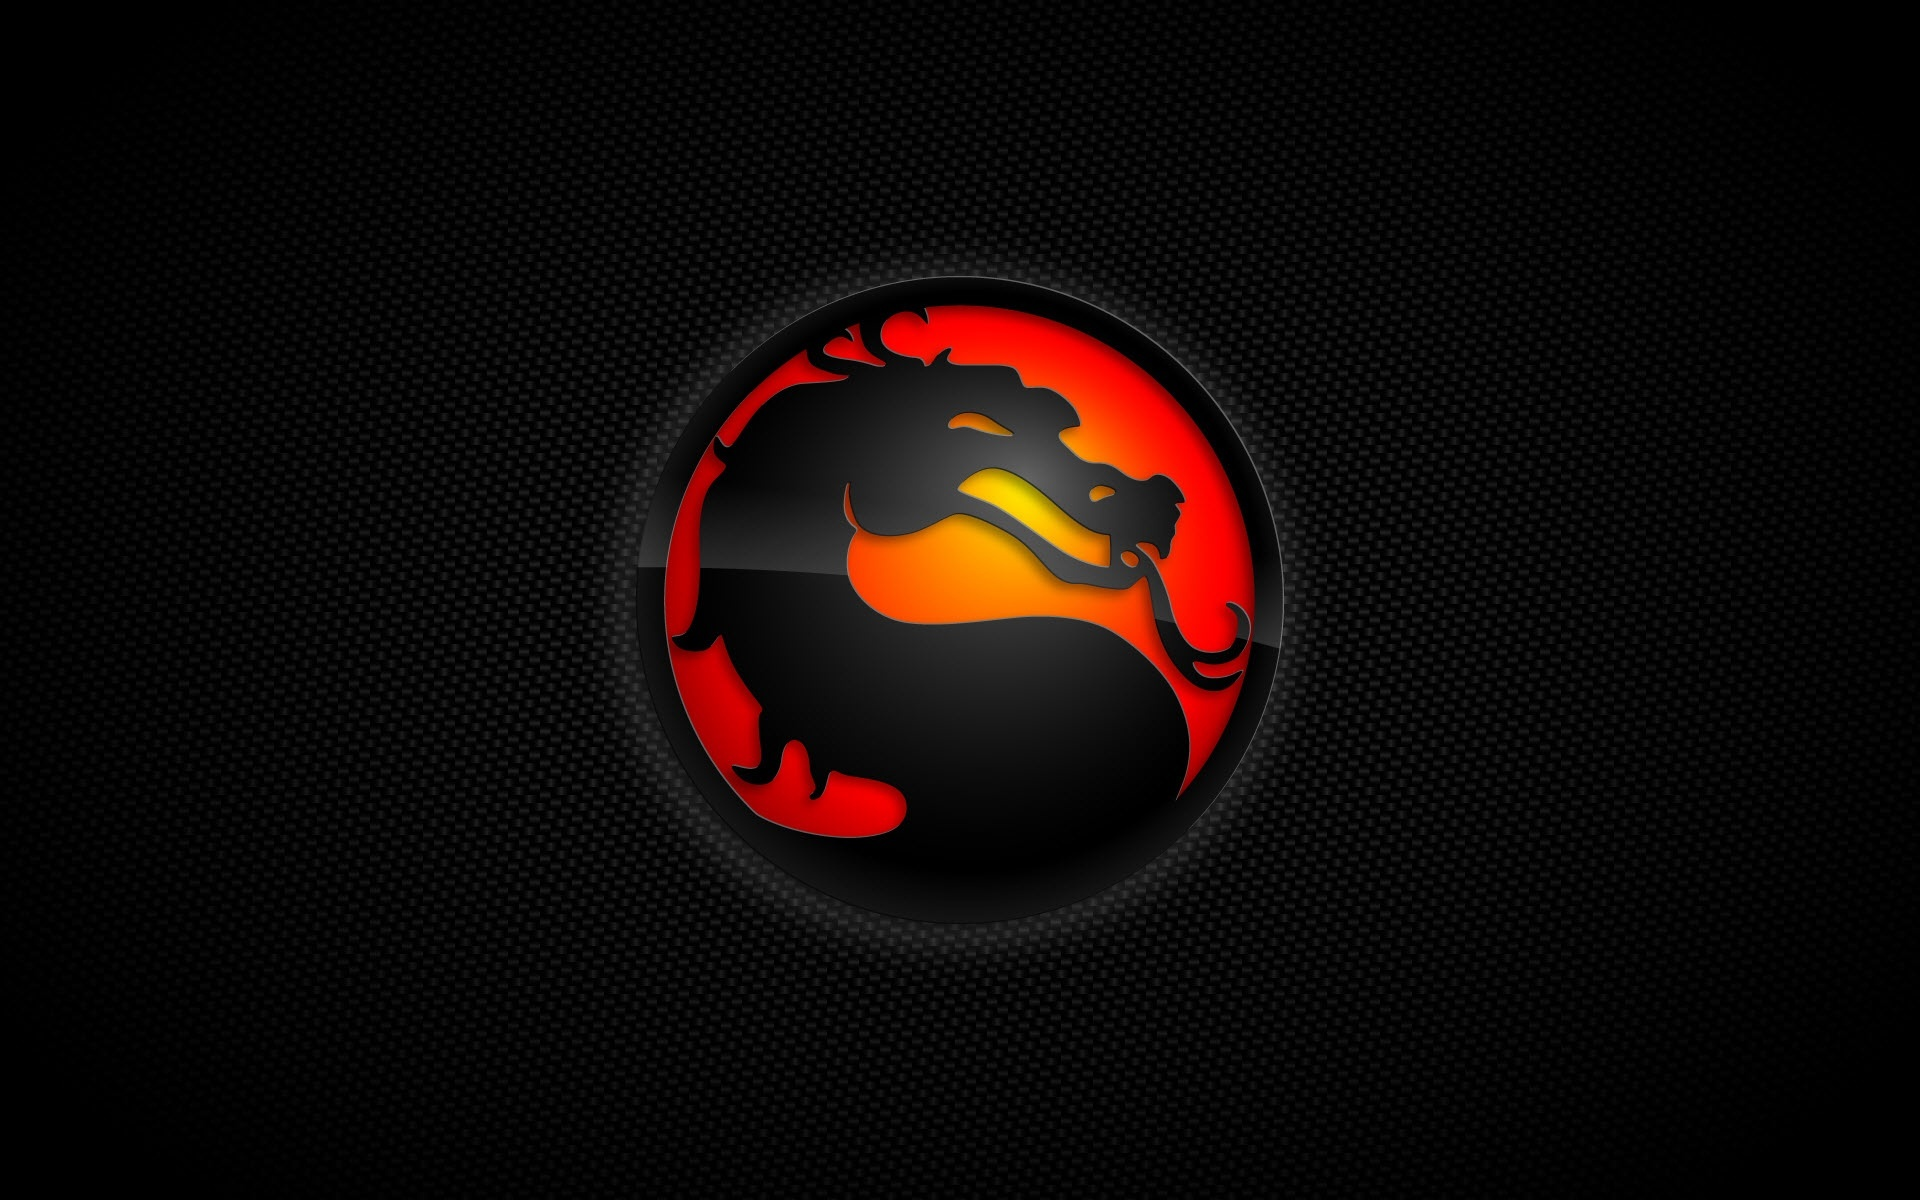 Mortal Kombat wallpaper The Dragon